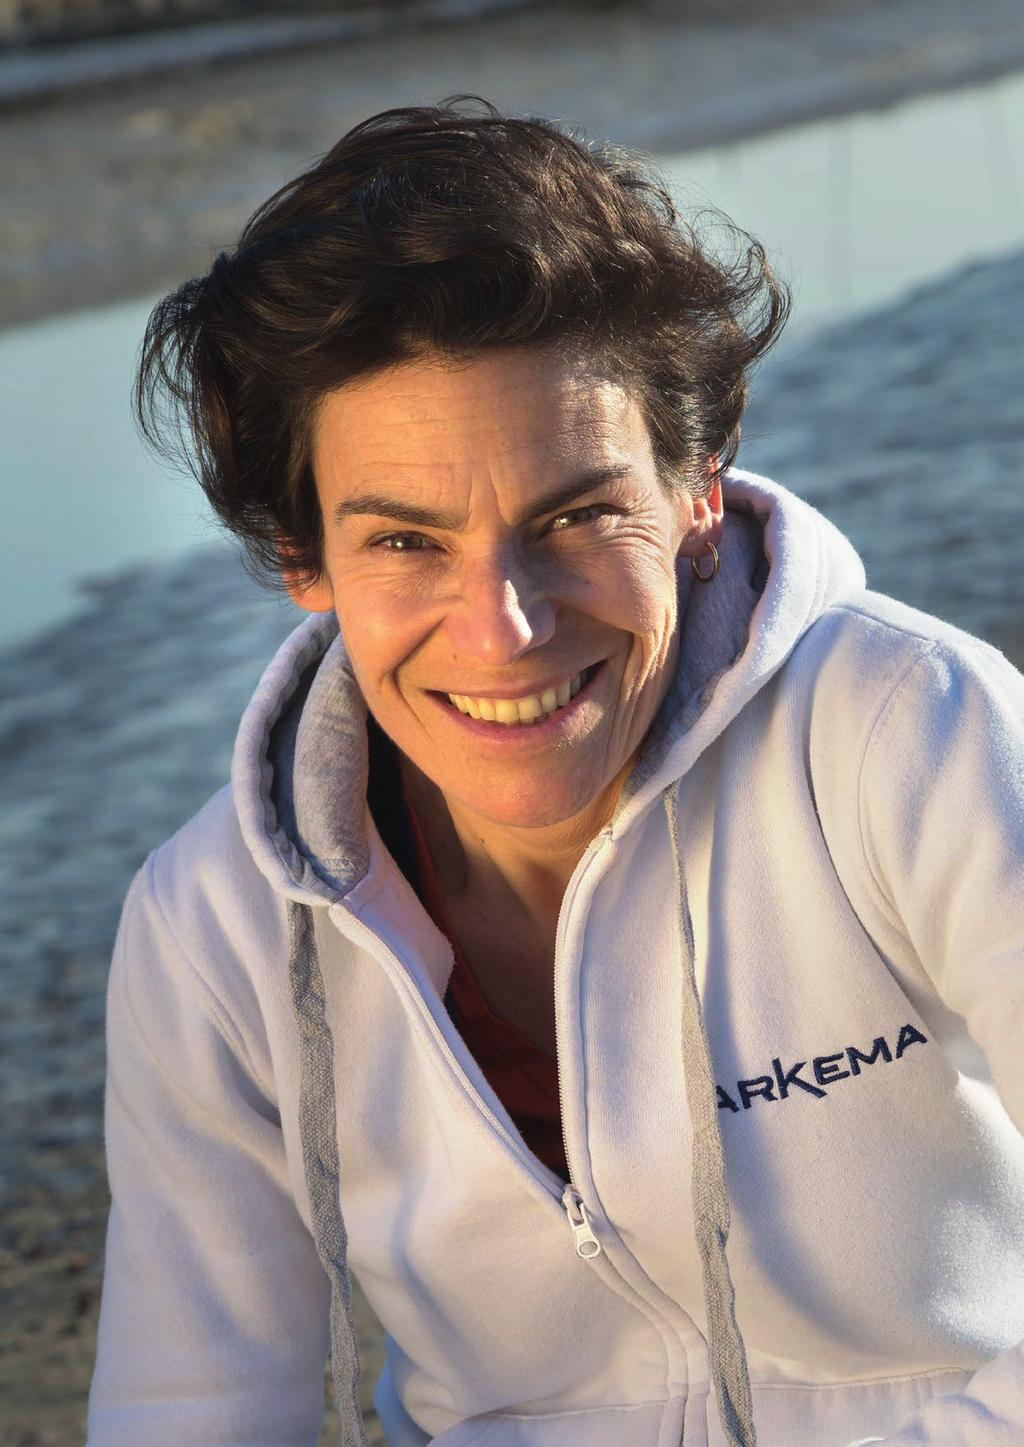 KARINE FAUCONNIER, THE PERFORMANCE ASSET Nationality: French Age: 45 years old (born in La Rochelle on 11 March 1972) Lives in Locmiquelic, Single 2016 1 st in Transat Québec - Saint-Malo 2009 1 st